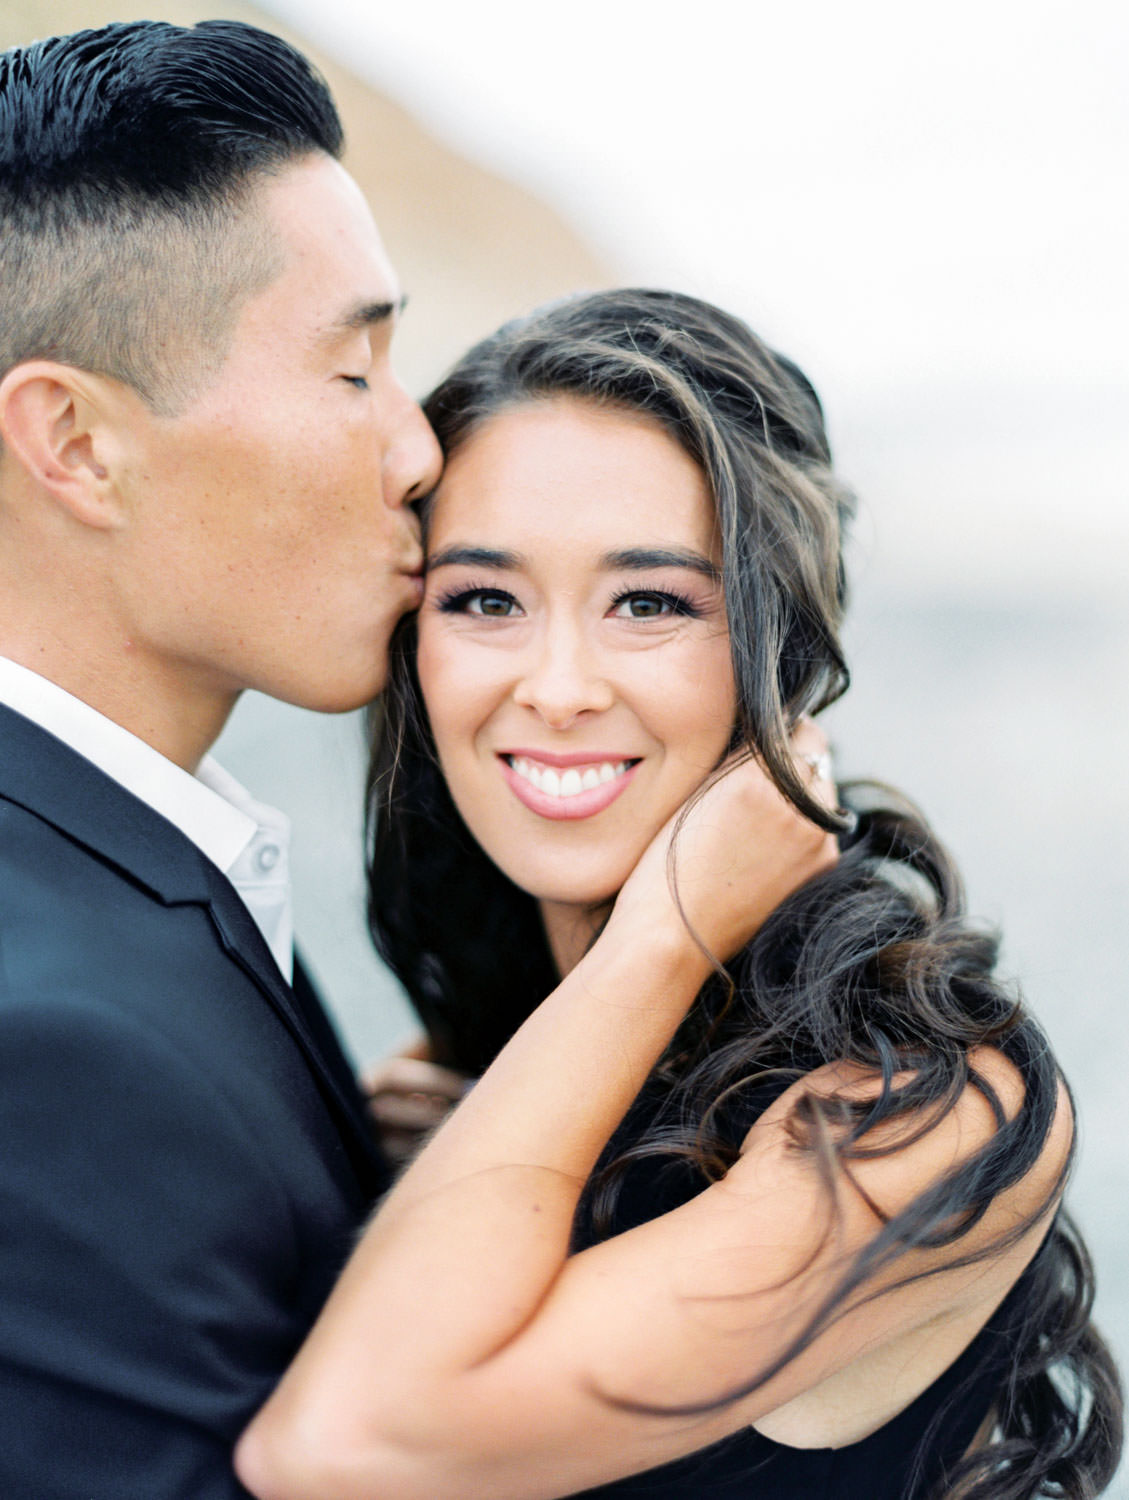 Groom kissing the bride. Engagement photo outfit ideas with a formal black suit and black dress. Bride's hair curled and down windswept. Torrey Pines beach photos on film by Cavin Elizabeth Photography.